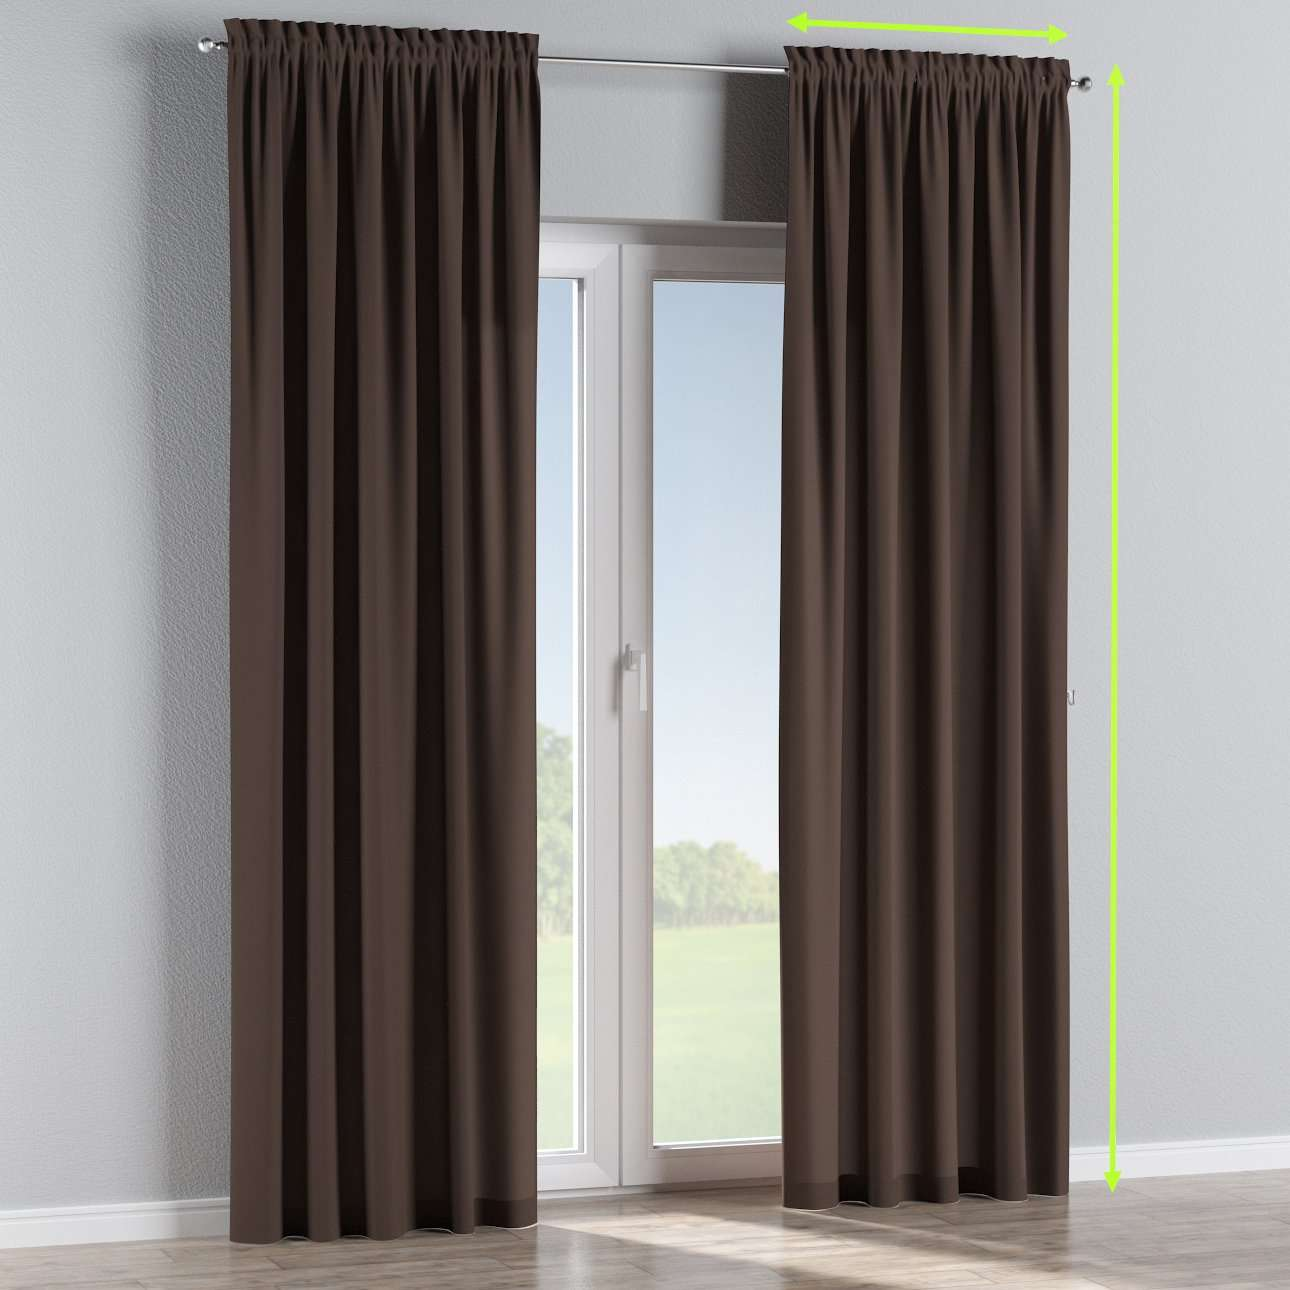 Slot and frill lined curtains in collection Panama Cotton, fabric: 702-03